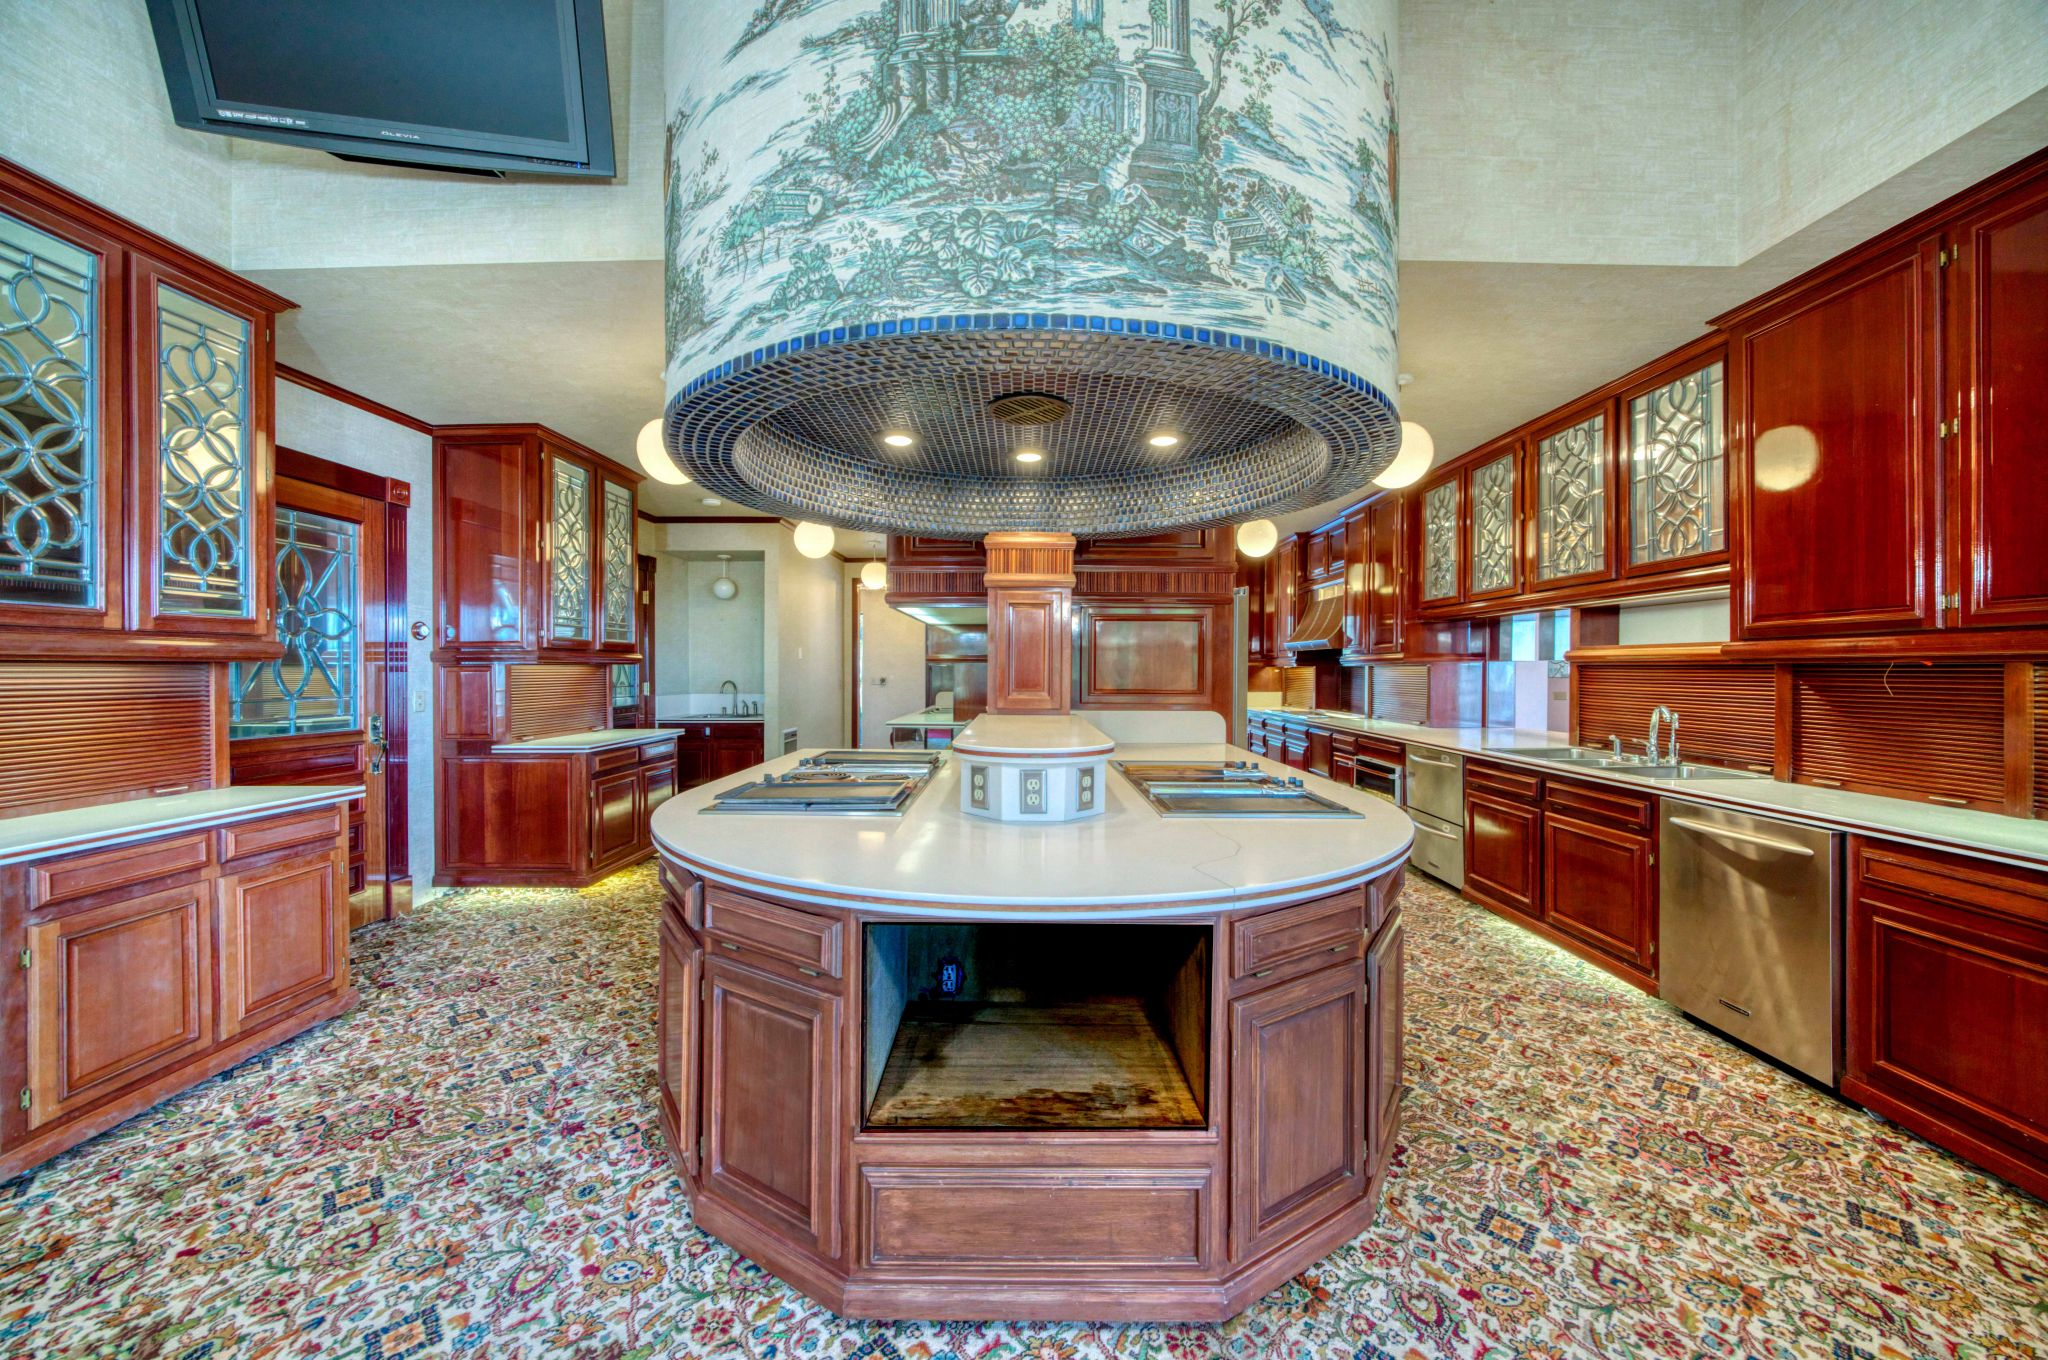 There is a massive kitchen, with cabinets constructed from rare purpleheart wood.